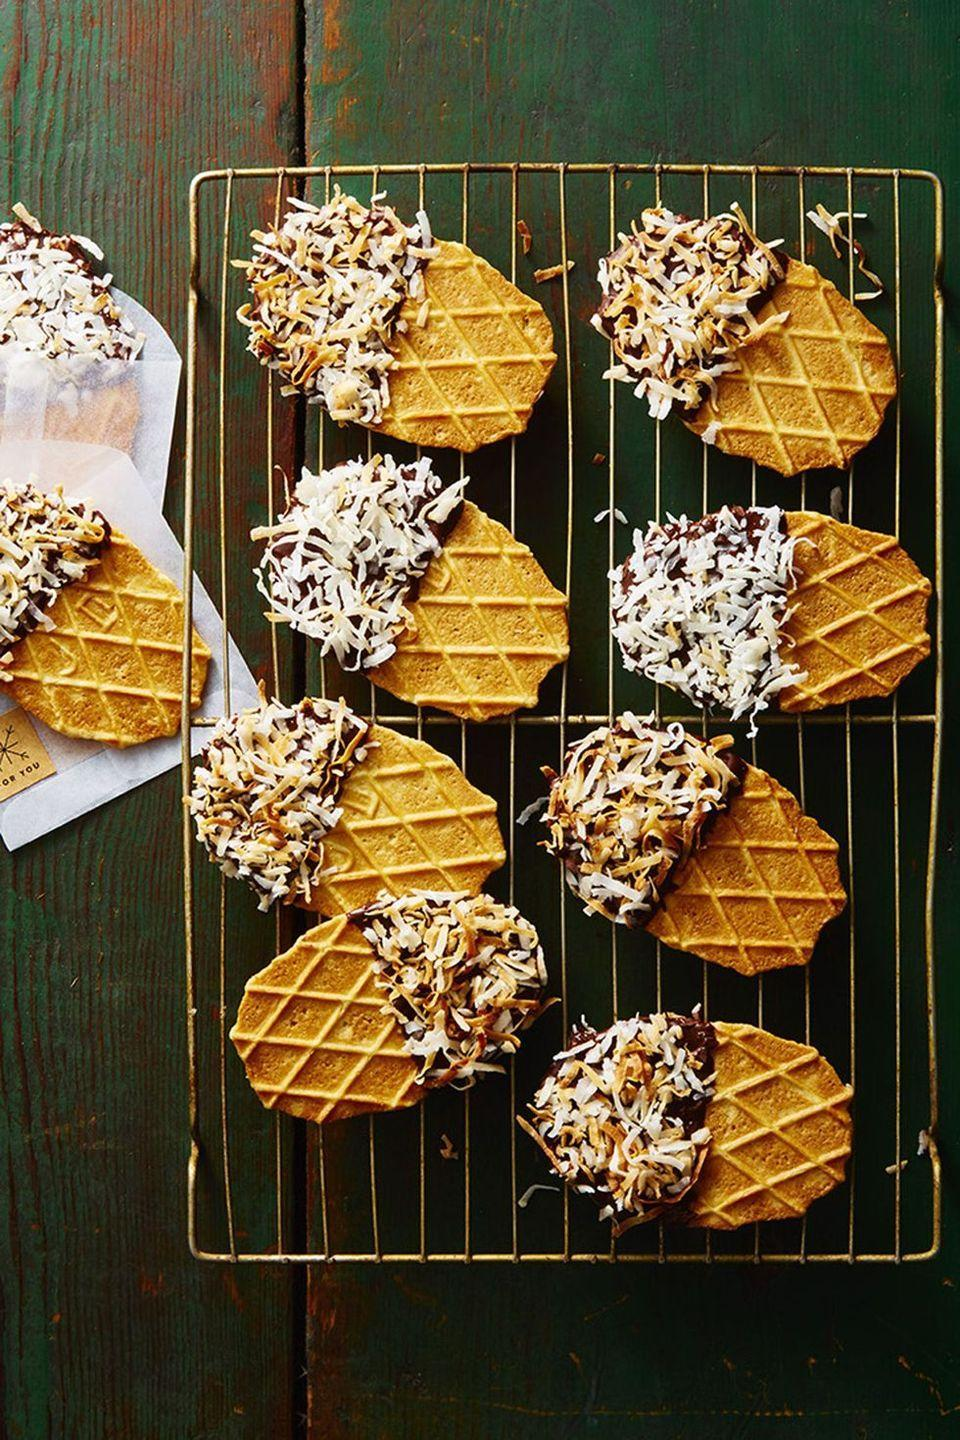 "<p>The recipe for an easy, no-bake Christmas treat: Three ingredients, five minutes and zero frustration.</p><p><em><a href=""https://www.goodhousekeeping.com/food-recipes/dessert/a46922/no-bake-waffle-dippers-recipe/"" rel=""nofollow noopener"" target=""_blank"" data-ylk=""slk:Get the recipe for No-Bake Waffle Dippers »"" class=""link rapid-noclick-resp"">Get the recipe for No-Bake Waffle Dippers »</a></em></p><p><strong>RELATED: </strong><a href=""https://www.goodhousekeeping.com/food-recipes/dessert/g838/no-bake-desserts/"" rel=""nofollow noopener"" target=""_blank"" data-ylk=""slk:16 Ridiculously Easy No-Bake Desserts to Try ASAP"" class=""link rapid-noclick-resp"">16 Ridiculously Easy No-Bake Desserts to Try ASAP</a><br></p>"